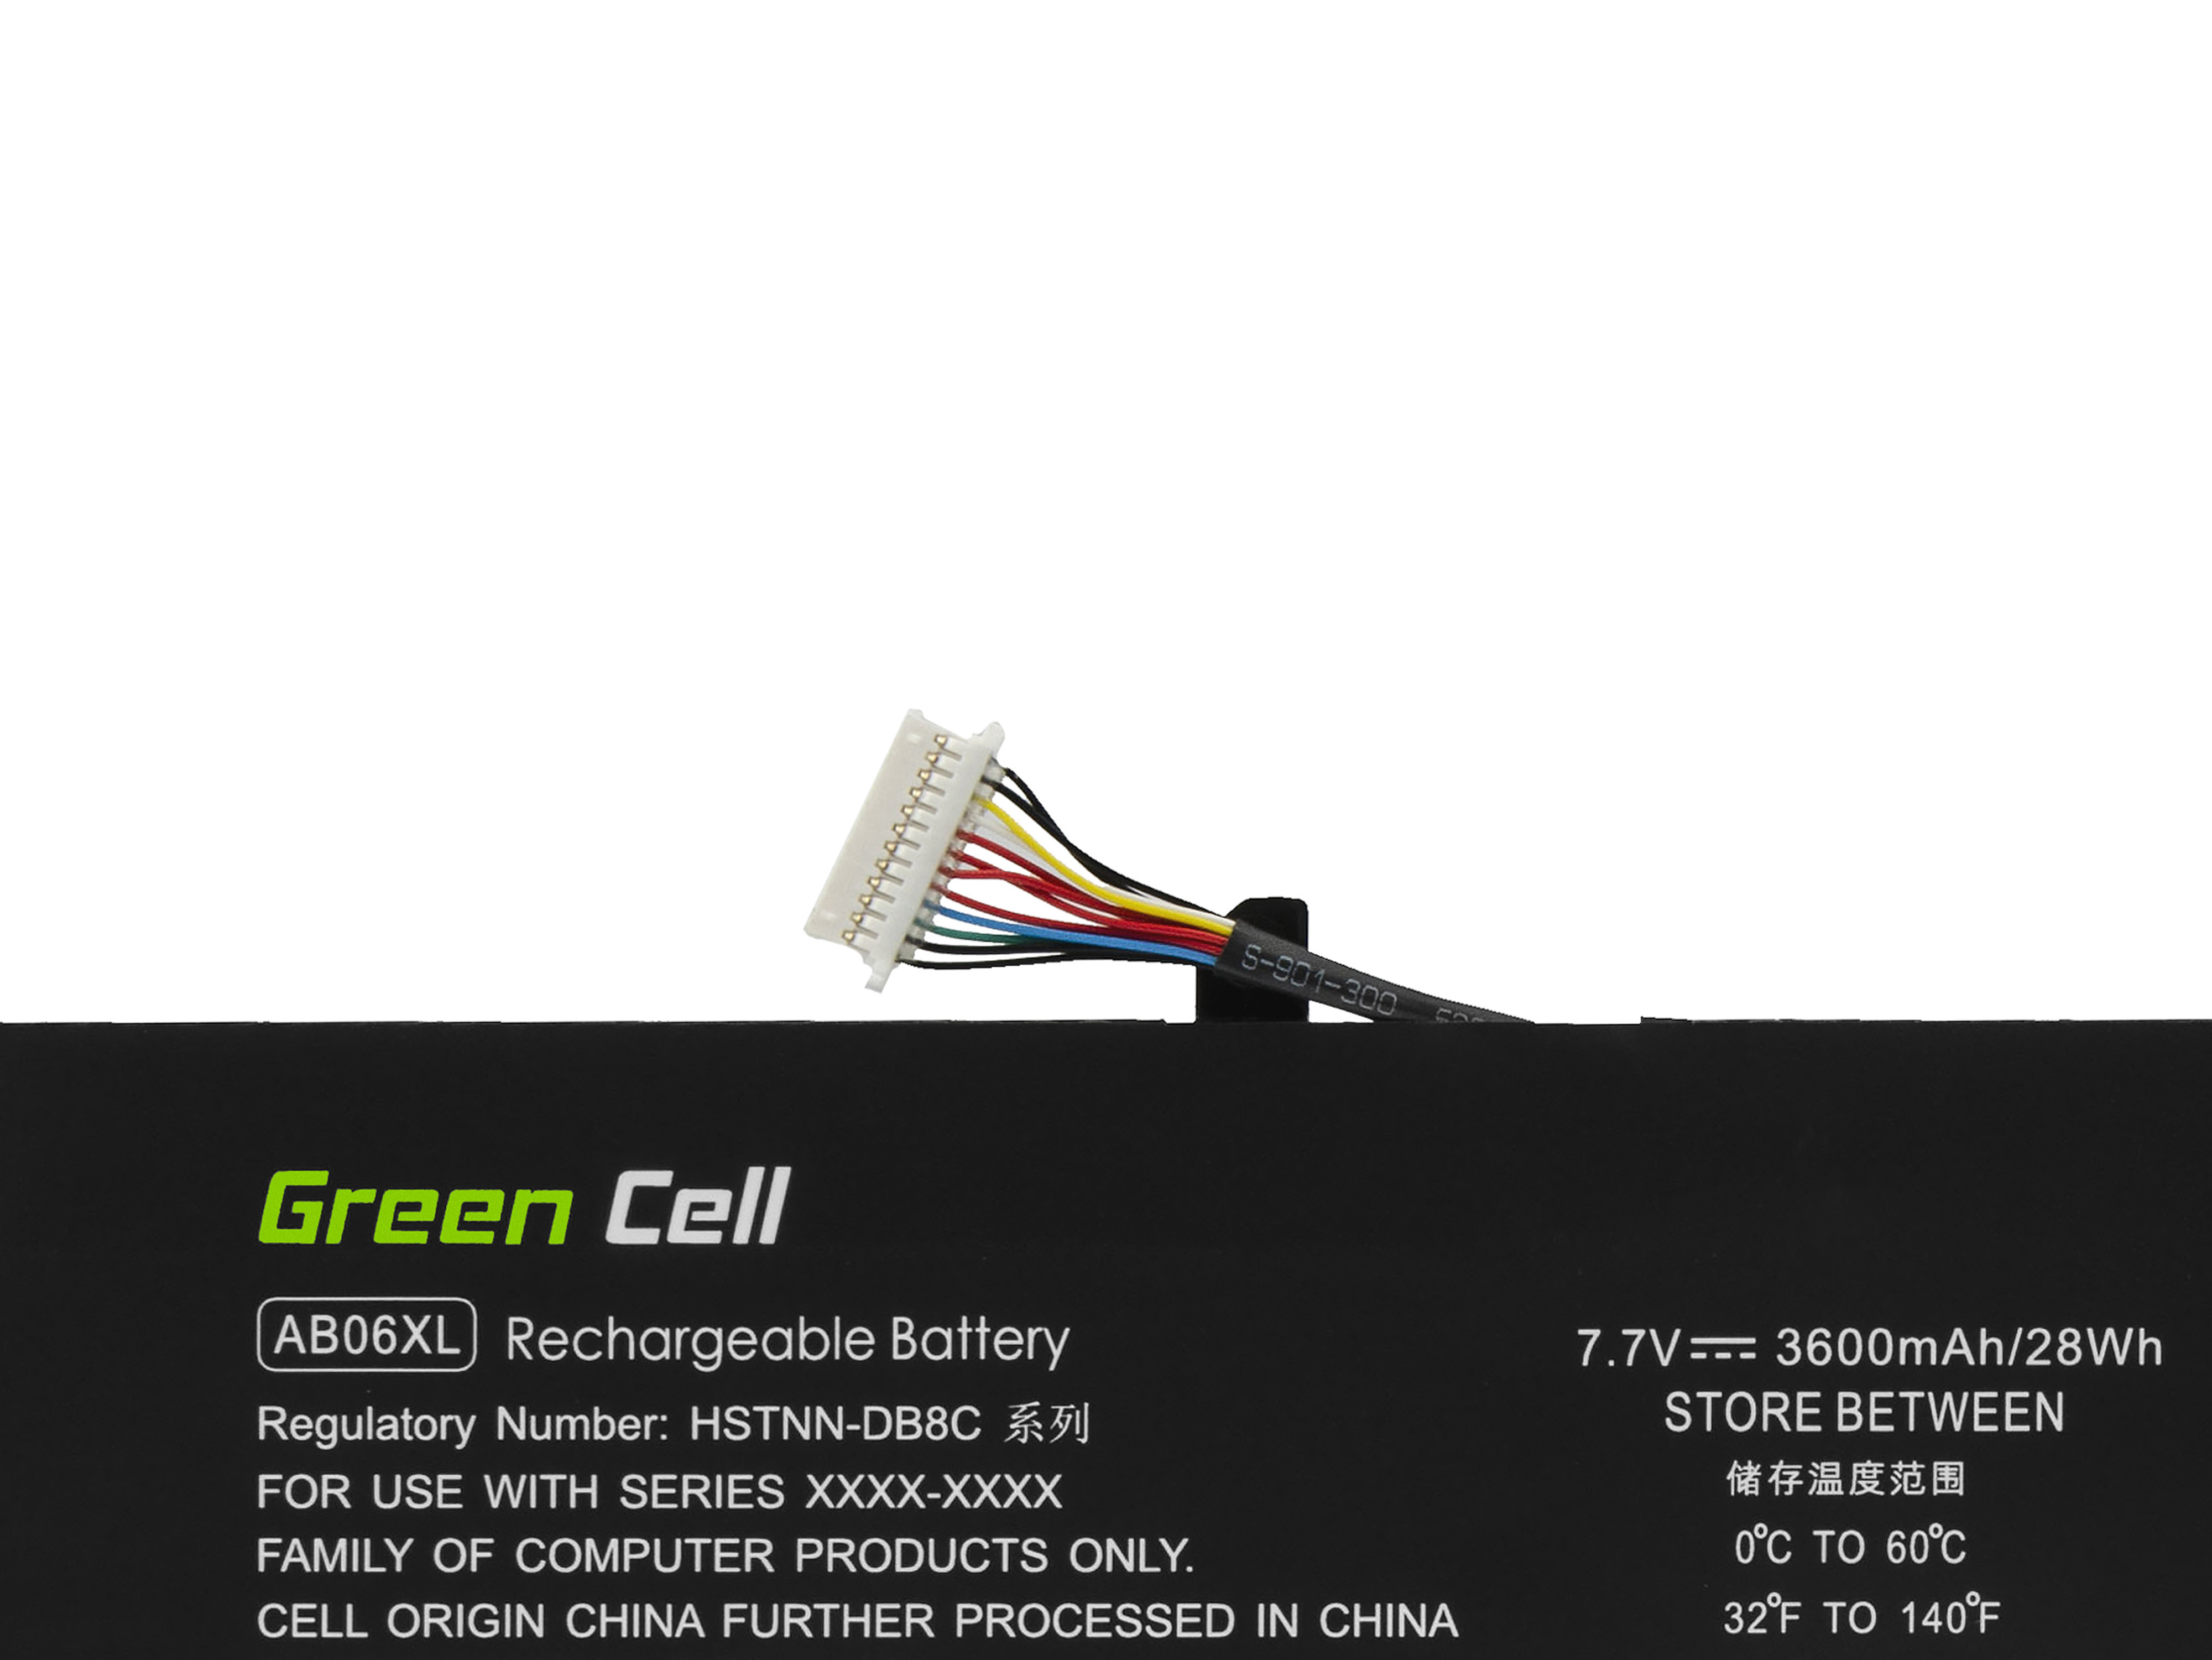 BAttery Green Cell AB06XL for HP Envy 13-AD102NW 13-AD015NW 13-AD008NW 13-AD100NW 13-AD101NW